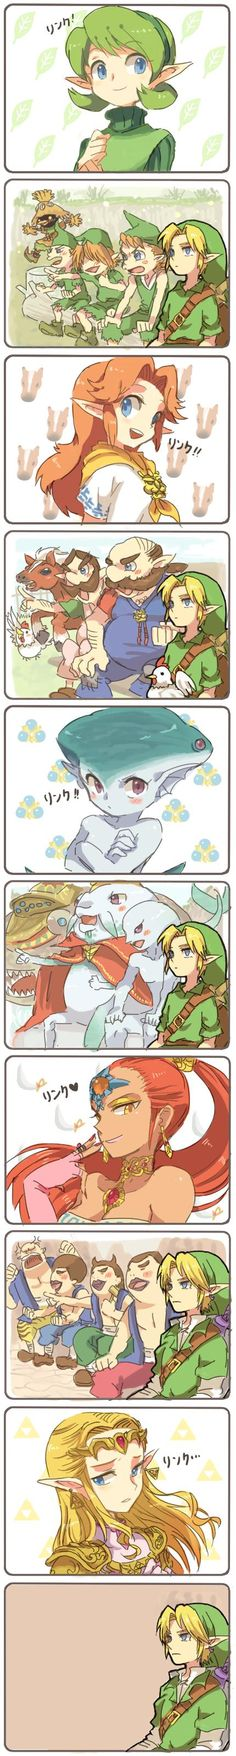 LoL I hate how I can't understand this, but it's still amusing to me! XD I love how Link be pimping, but only wants Zelda!